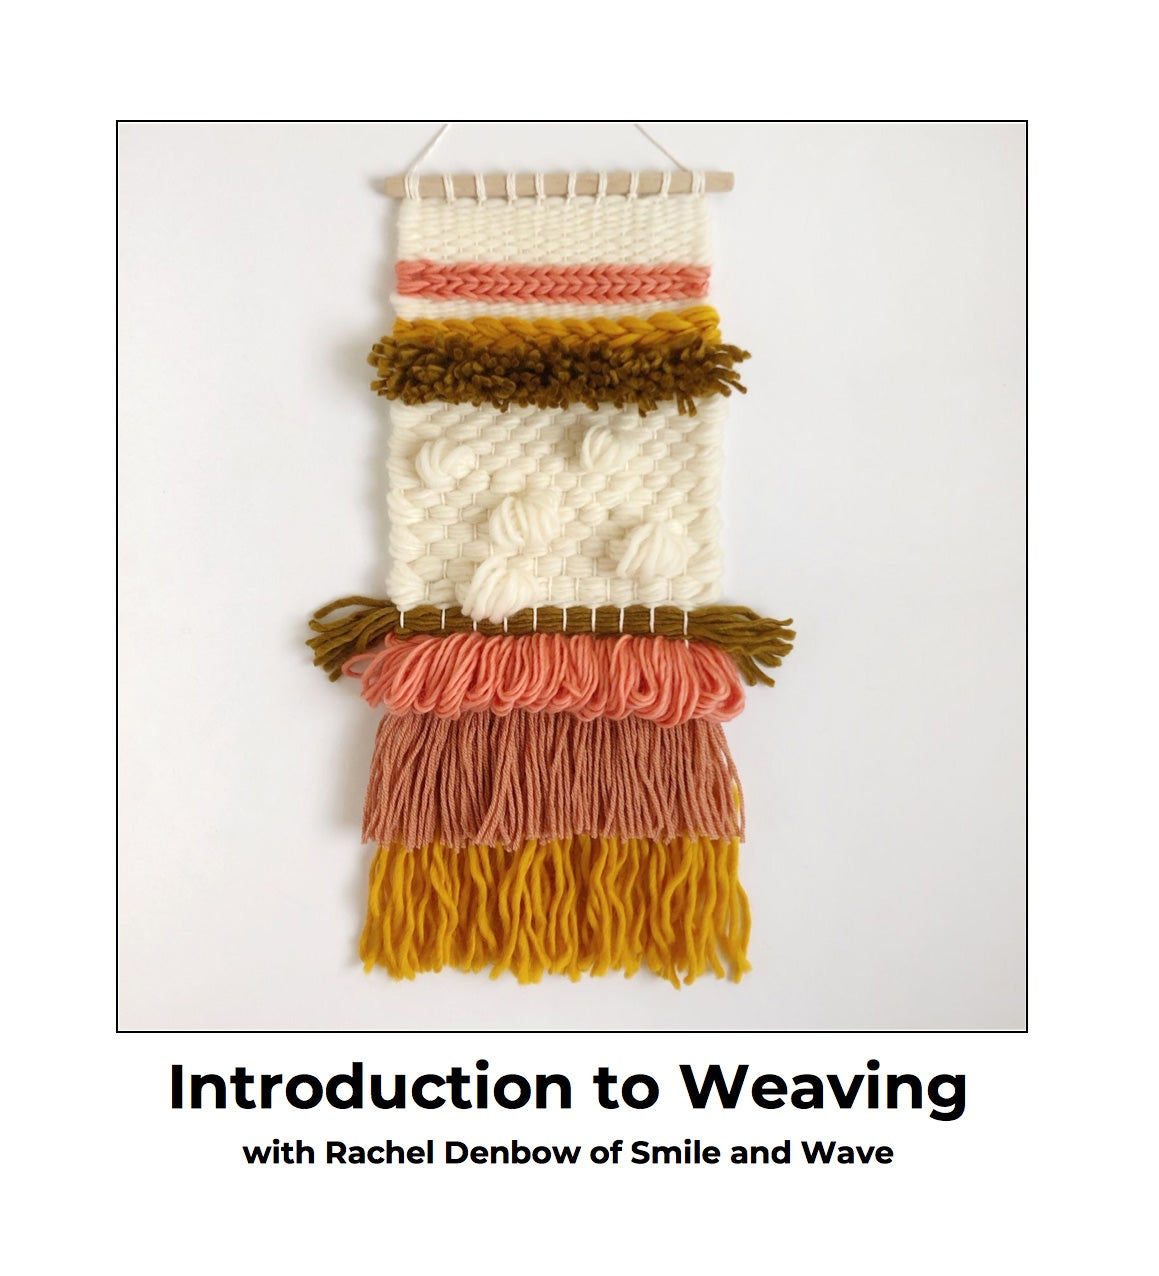 Image of Beginner's Cherry Weaving Kit - Hold